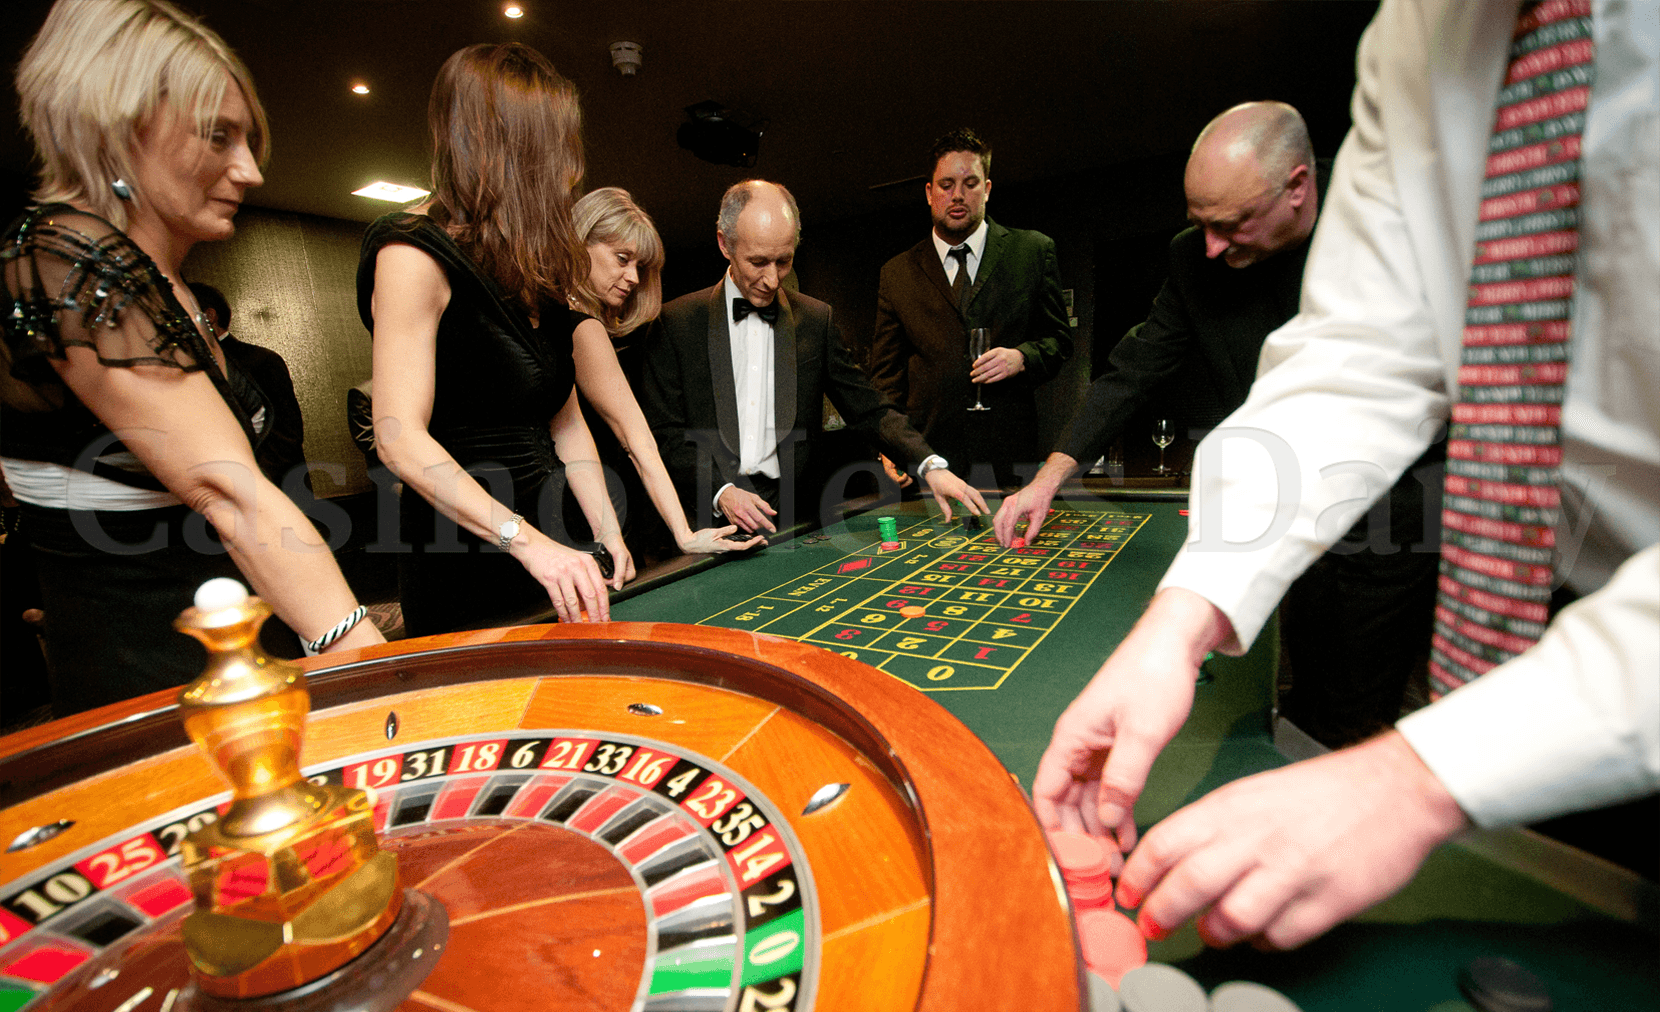 Strategy, intuition or luck: how do you win at roulette?